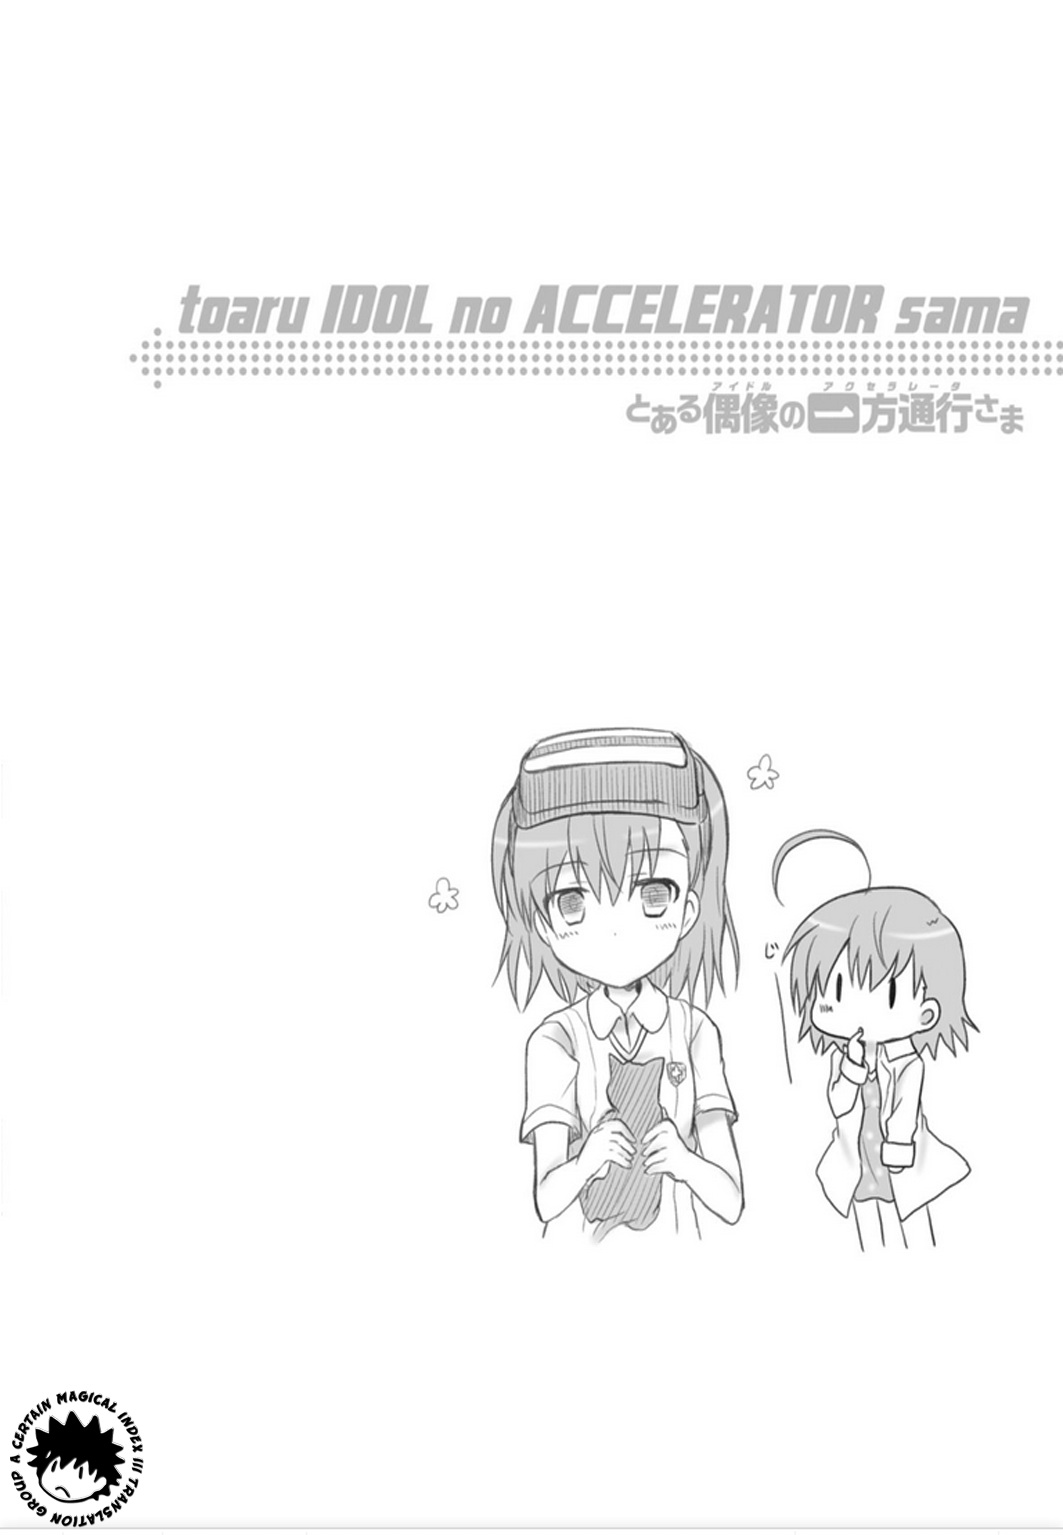 ACertainIdolAccelerator- Vol.1 Chapter 10 10 5 Omake